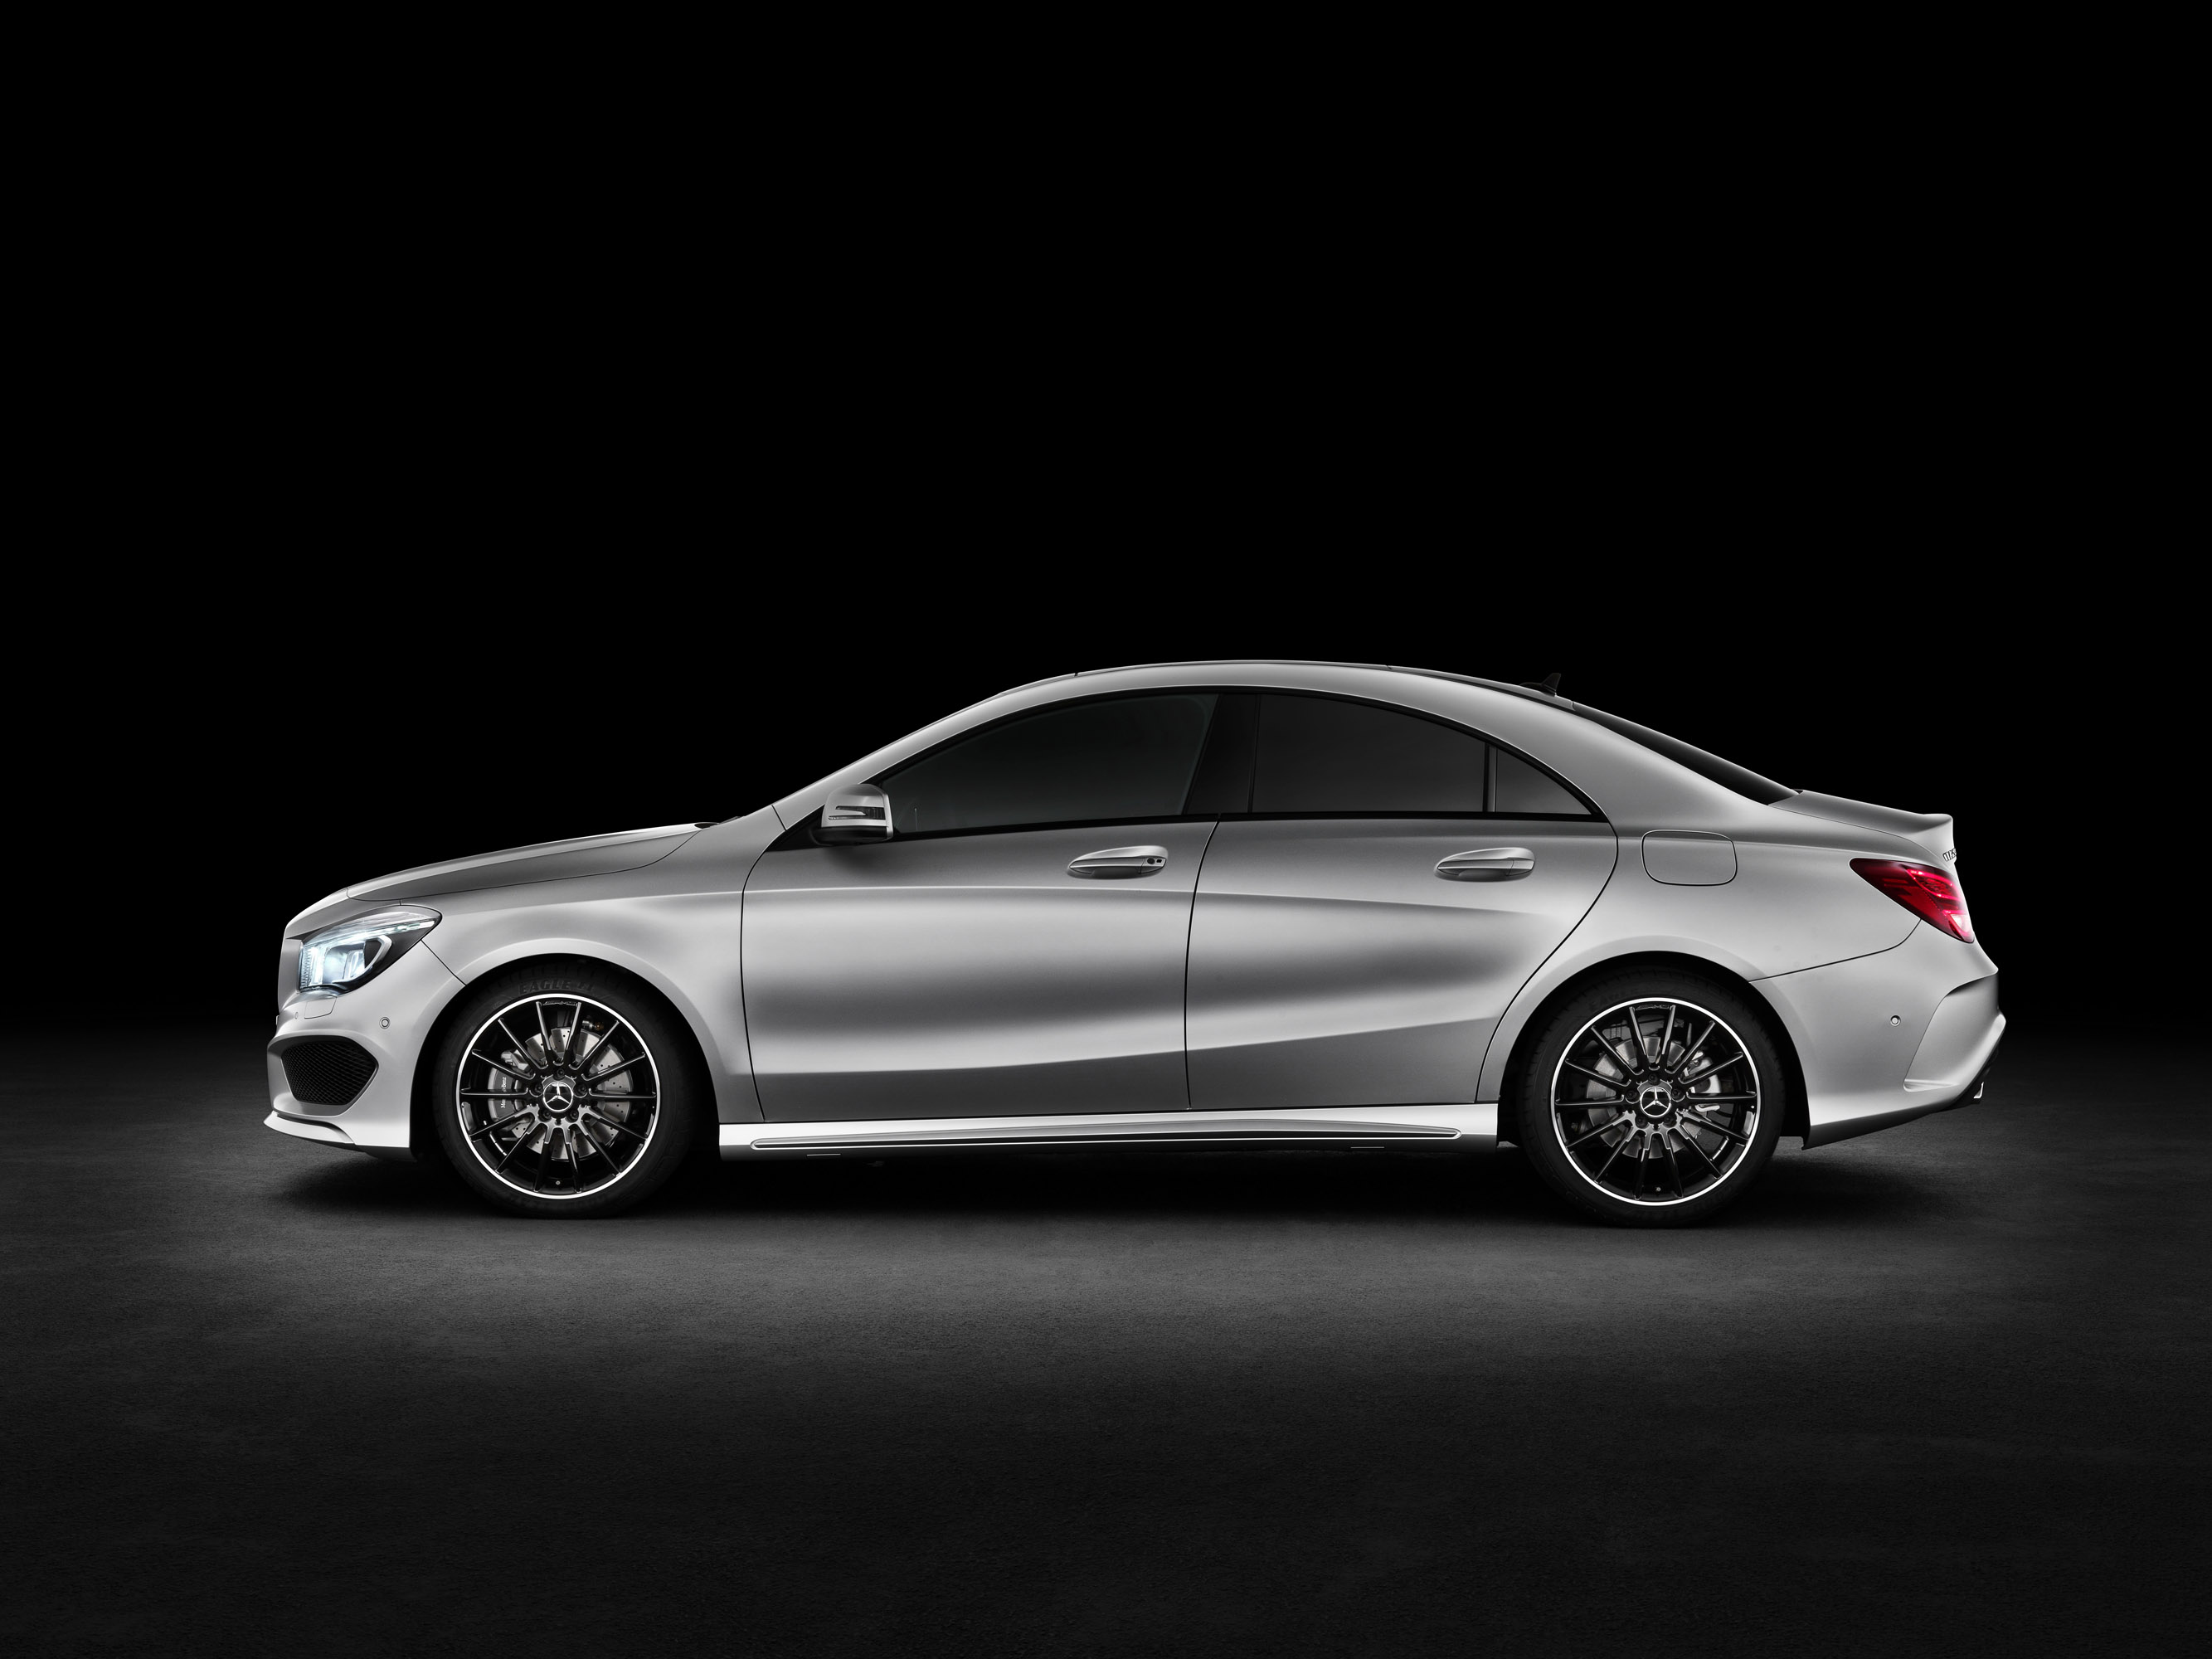 Mercedes benz cla gets ready for 2015 with more features for Mercedes benz cla 250 top speed